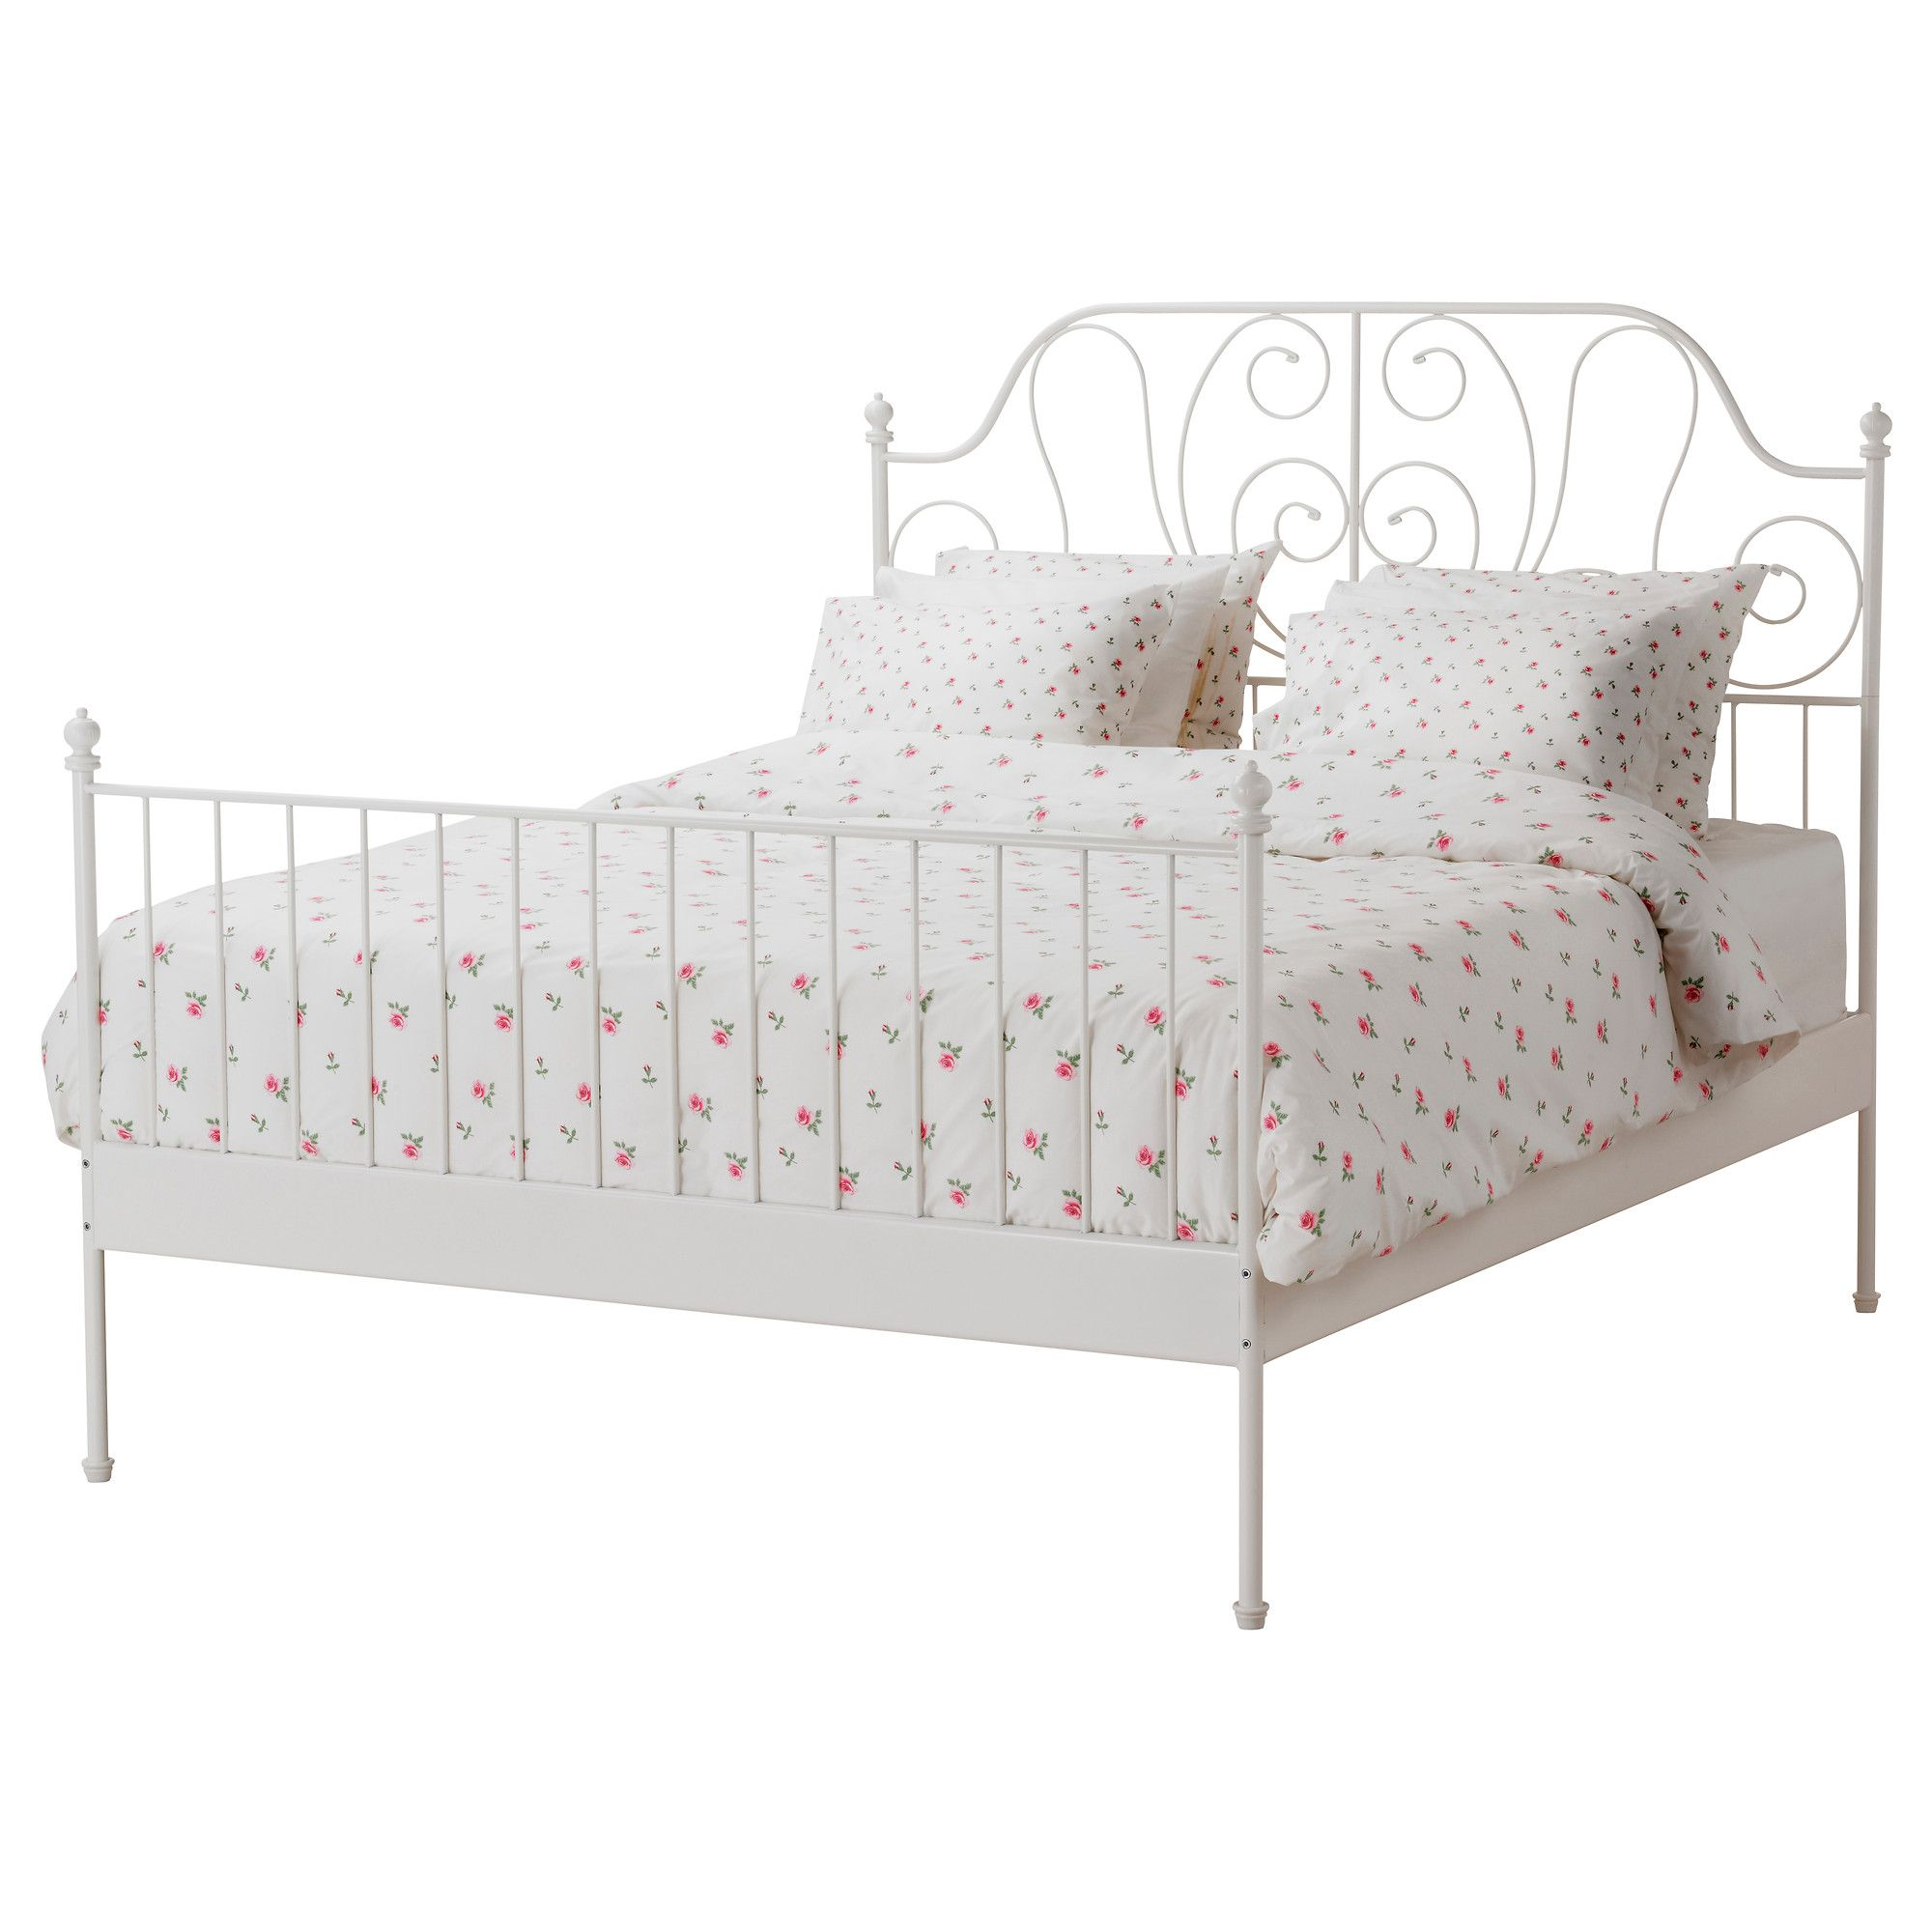 leirvik bed frames a leirvik bed frame helps create a classic, warm and inviting BQSAUKX